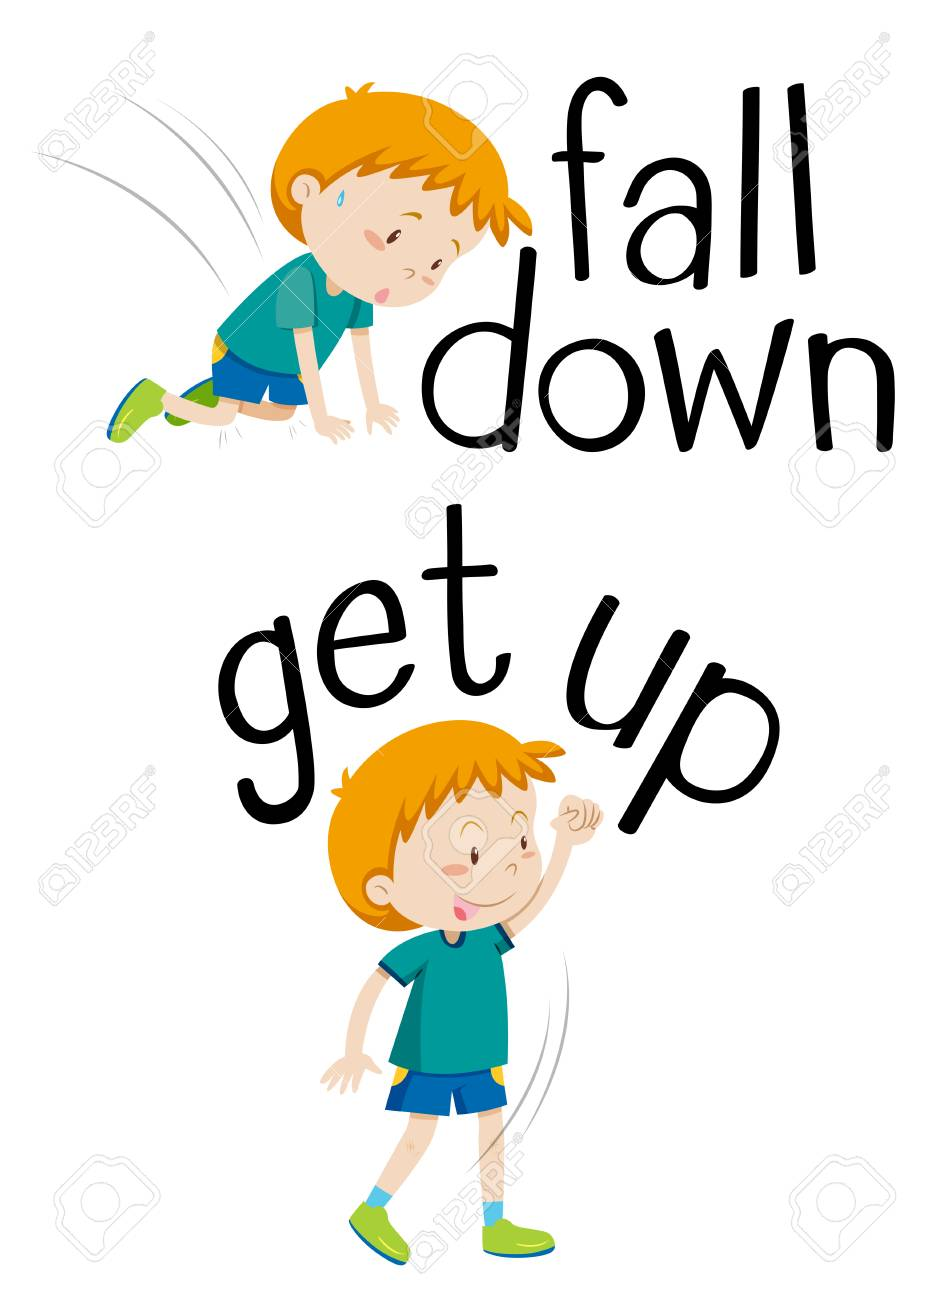 Opposite words for fall down and get up illustration.